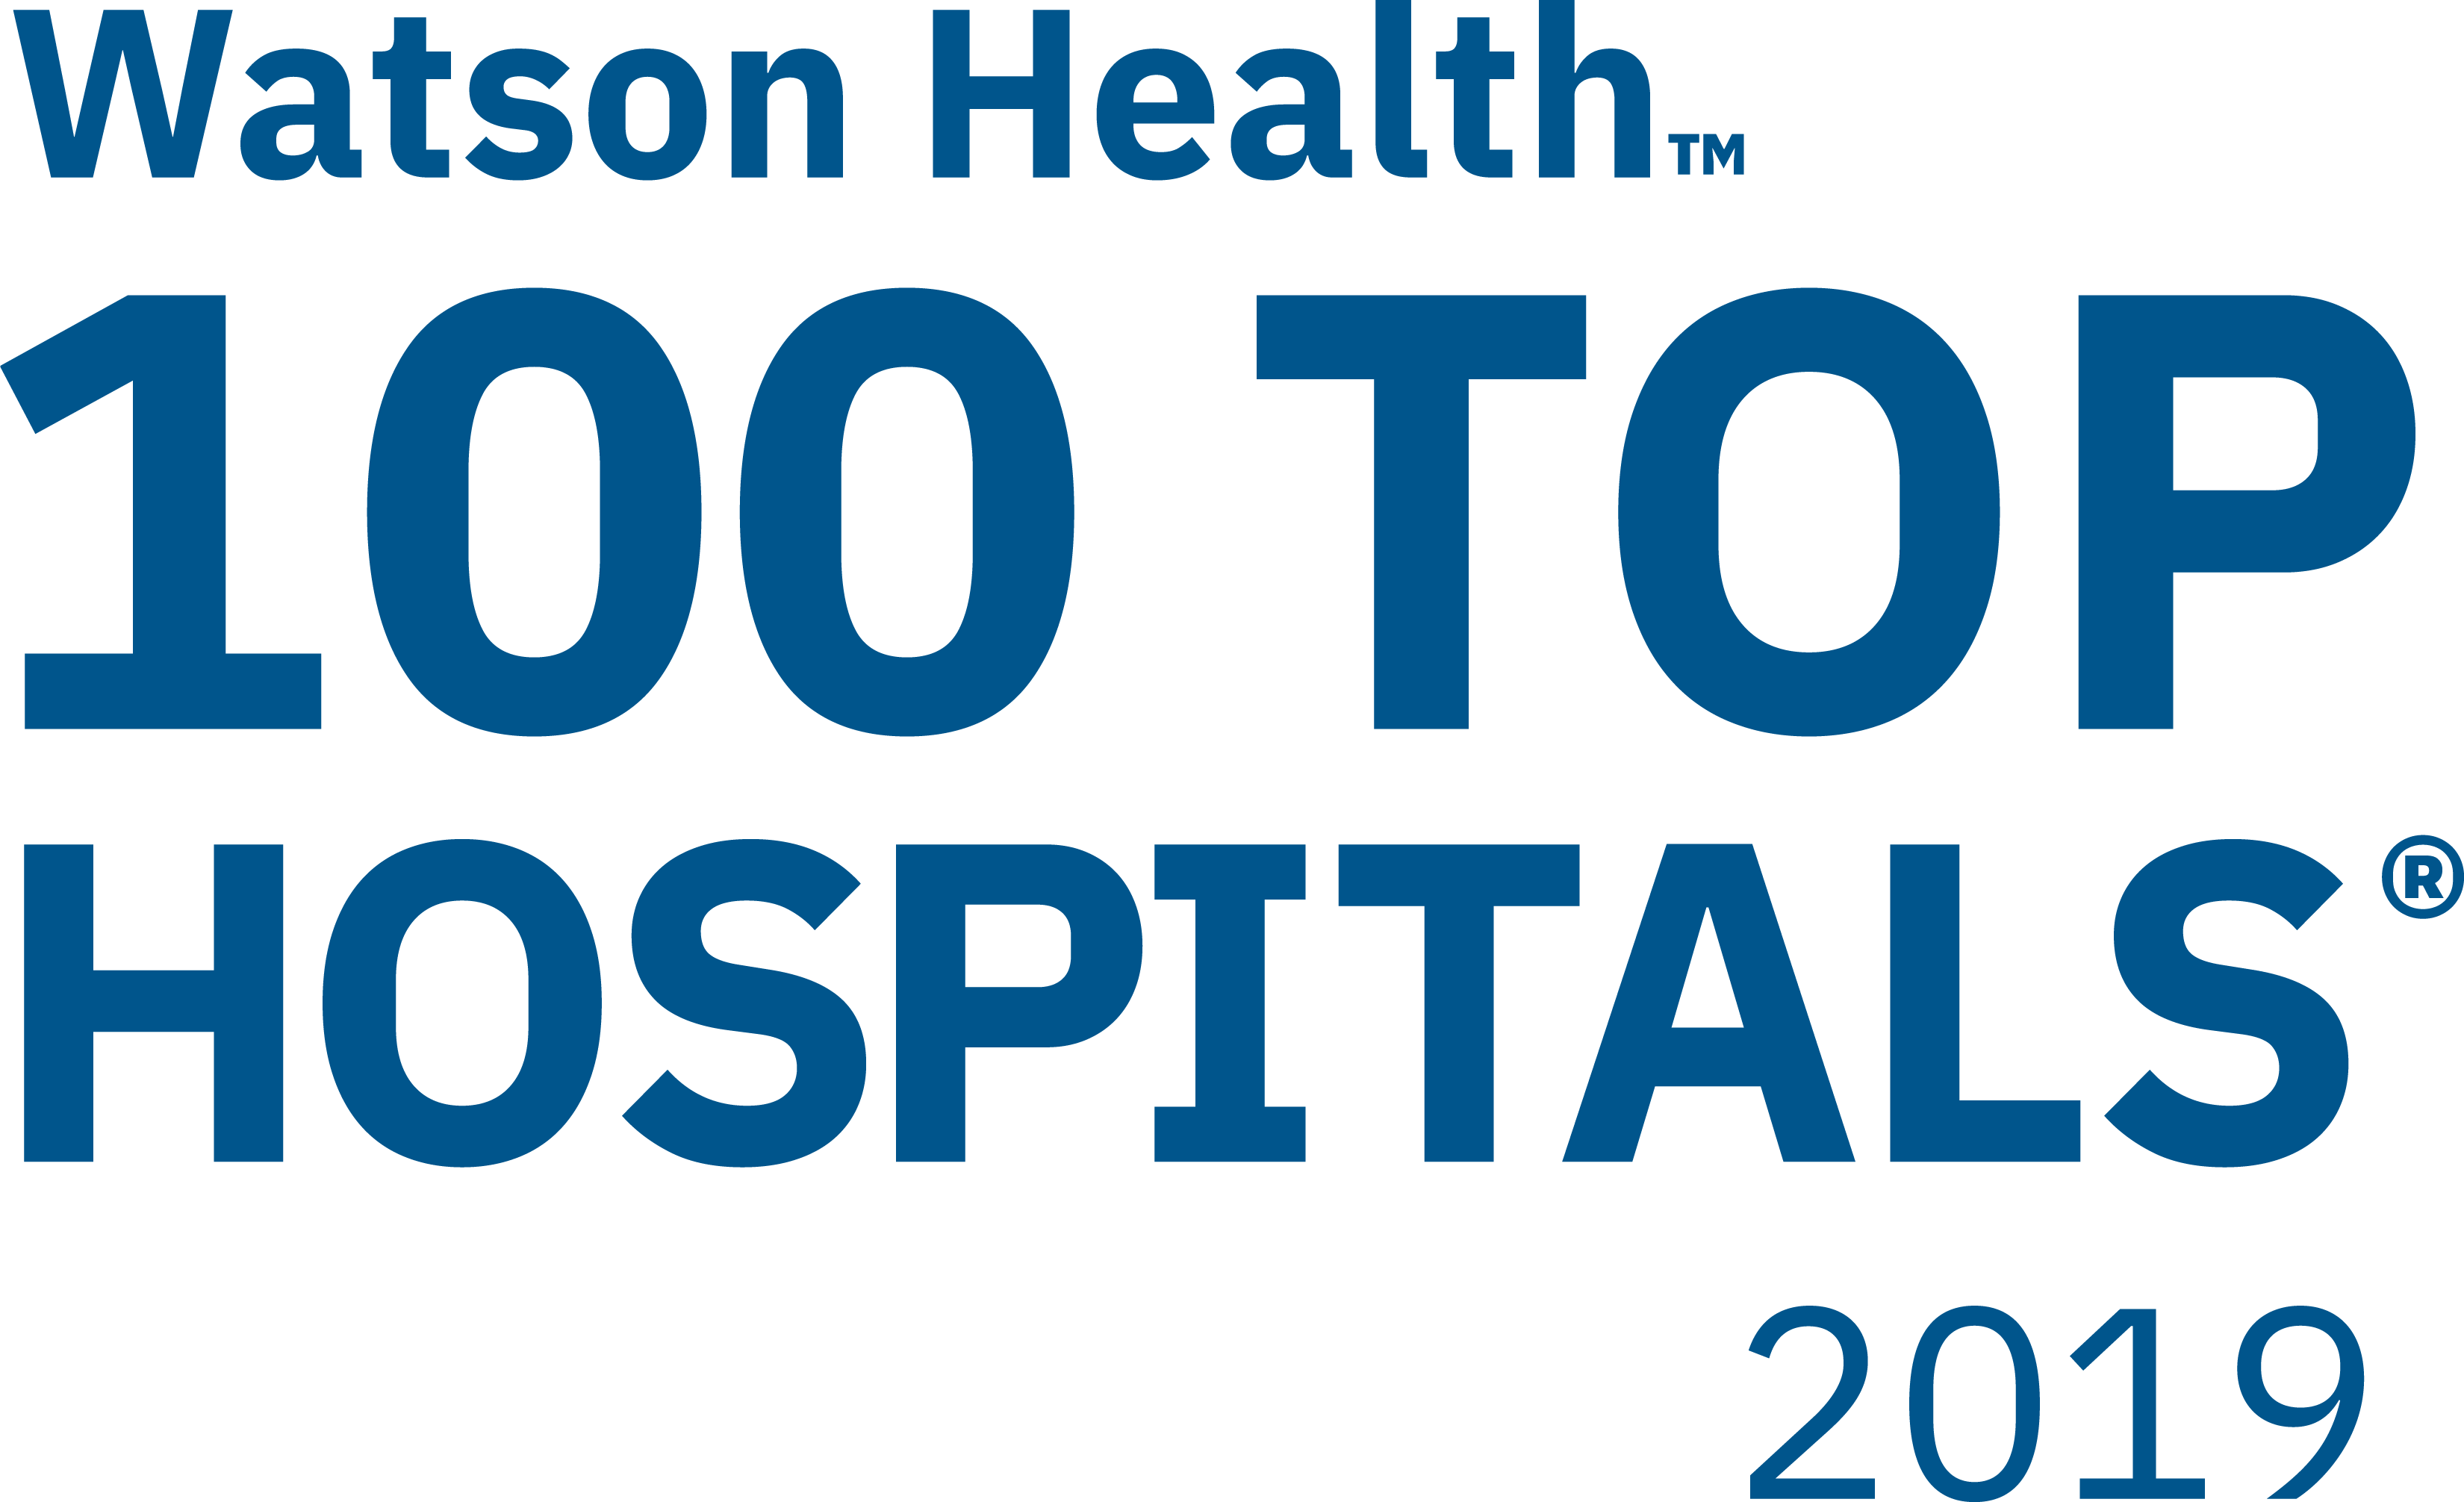 Watson Health Top 100 Hospital